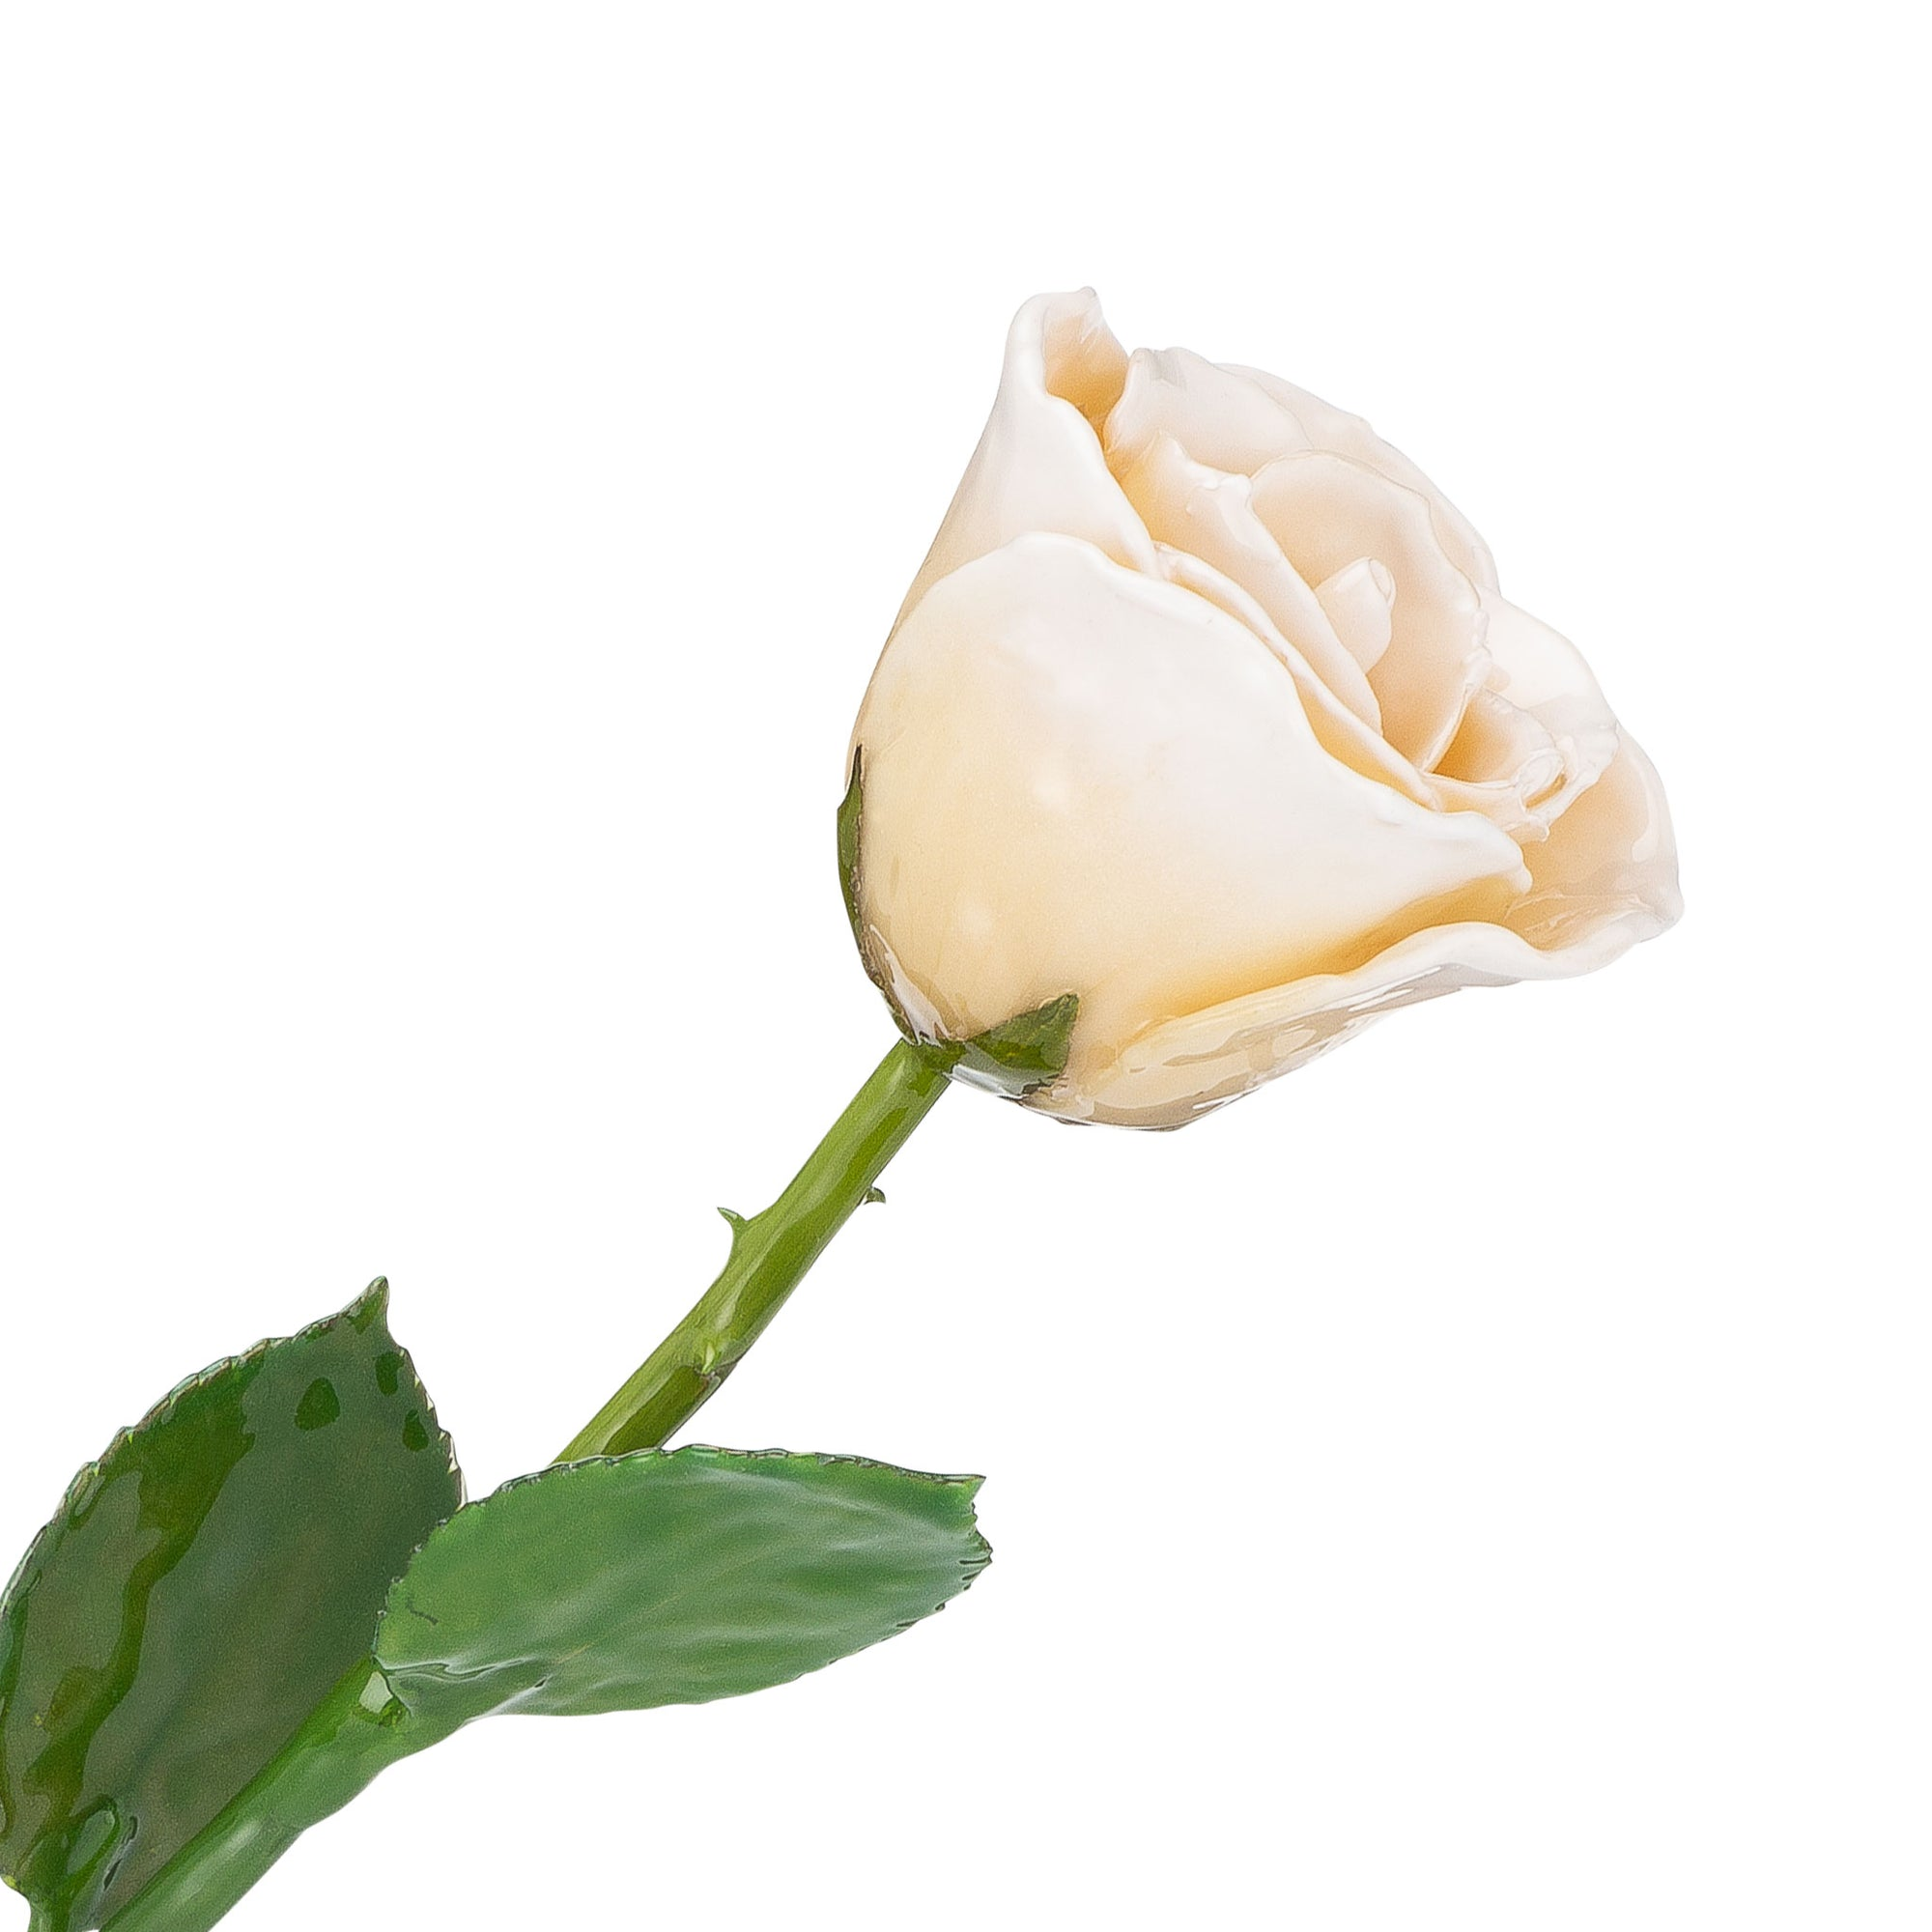 Natural (Green Stem) Forever Rose with White Colored Petals. View of Stem, Leaves, and Rose Petals. This a Forever Rose without any gold or other precious metals on it.